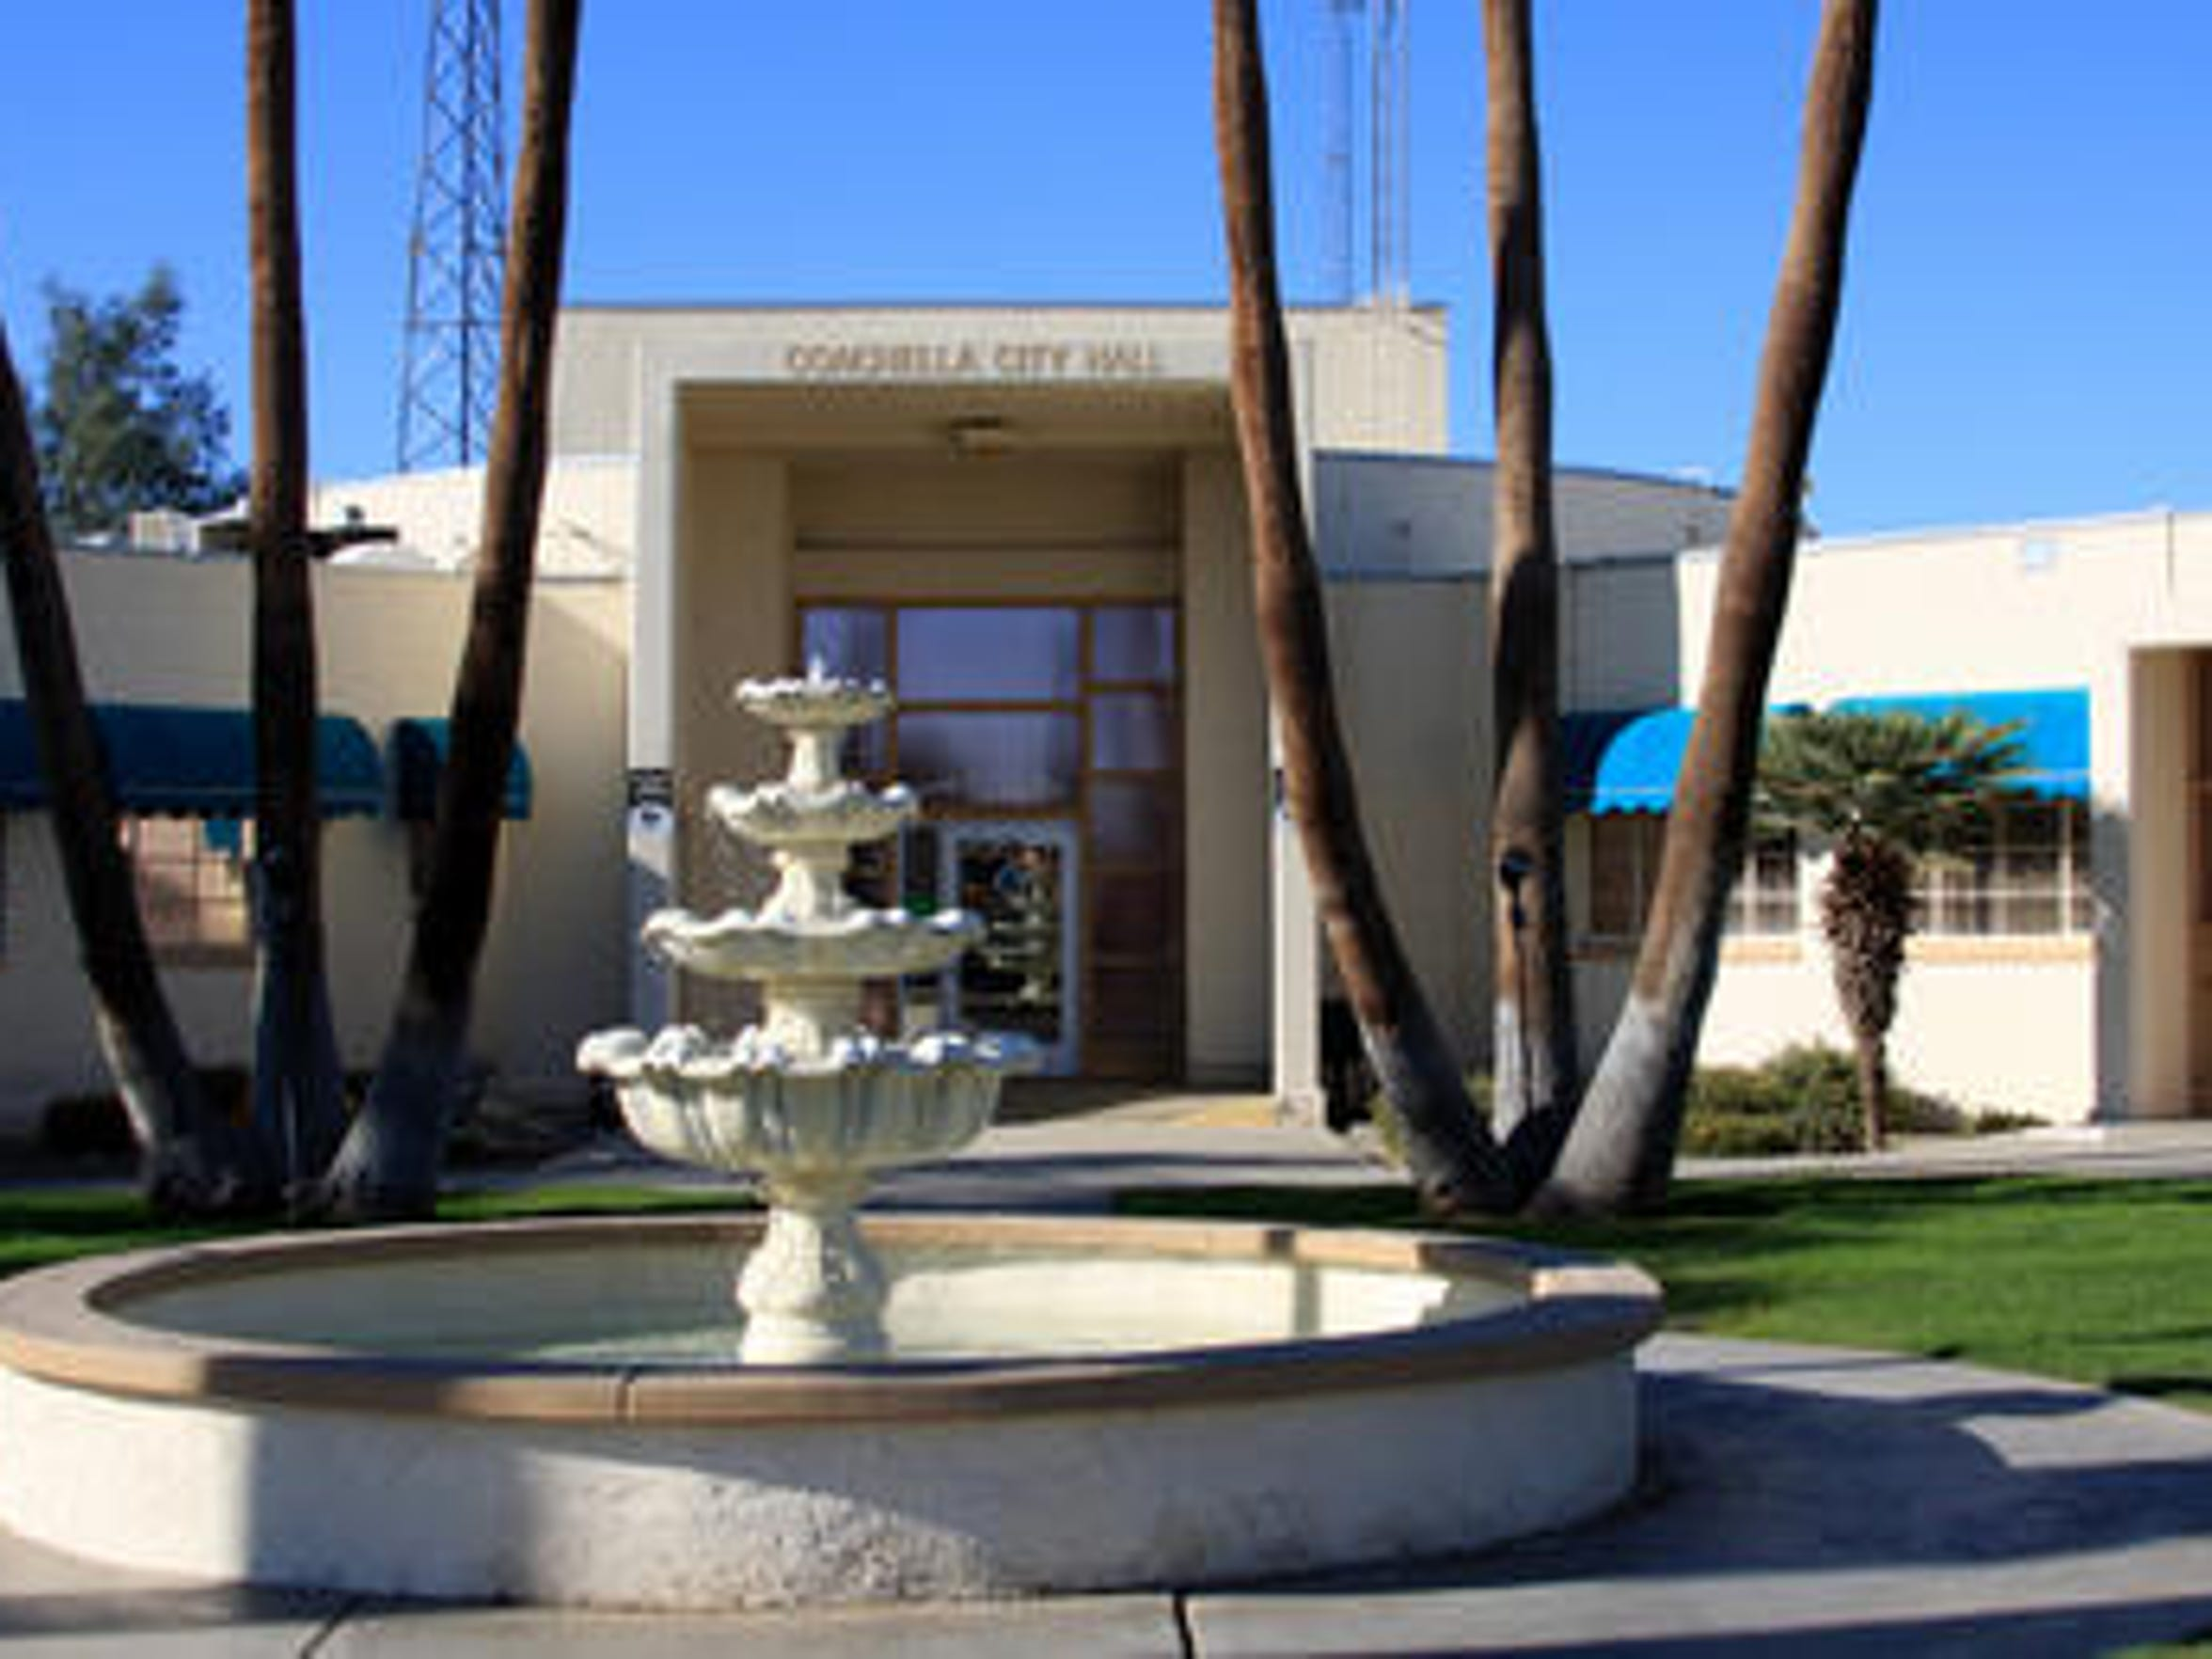 Elected officials at Coachella City Hall and others across the Coachella Valley are awaiting news about how much their respective cities will be charged by the Riverside County Sheriff's Department for services.